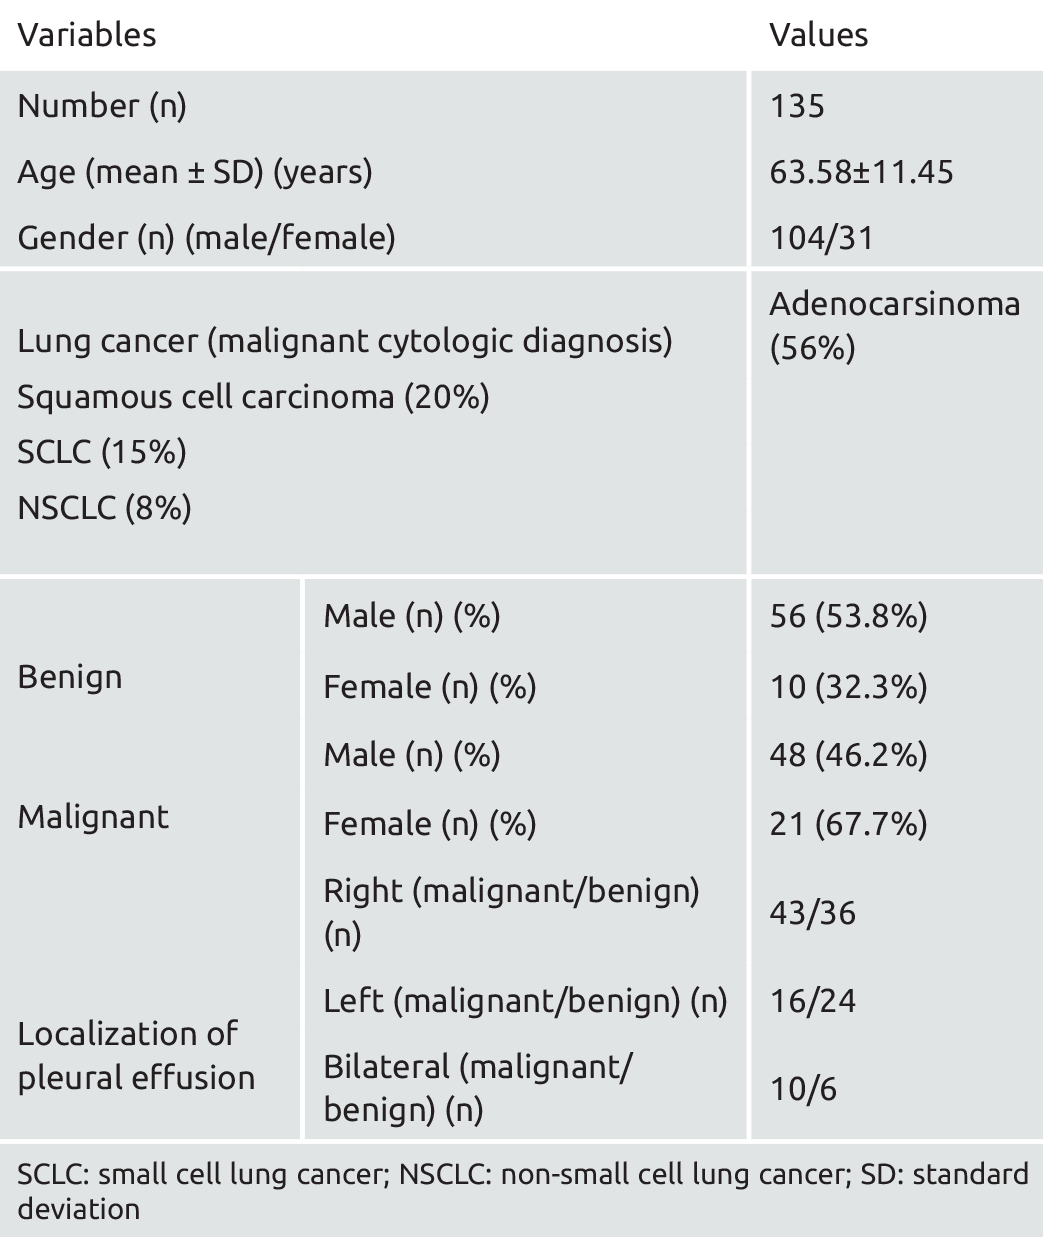 Lung cancer benign vs malignant Cancer pulmonar, Benign cancer in lungs